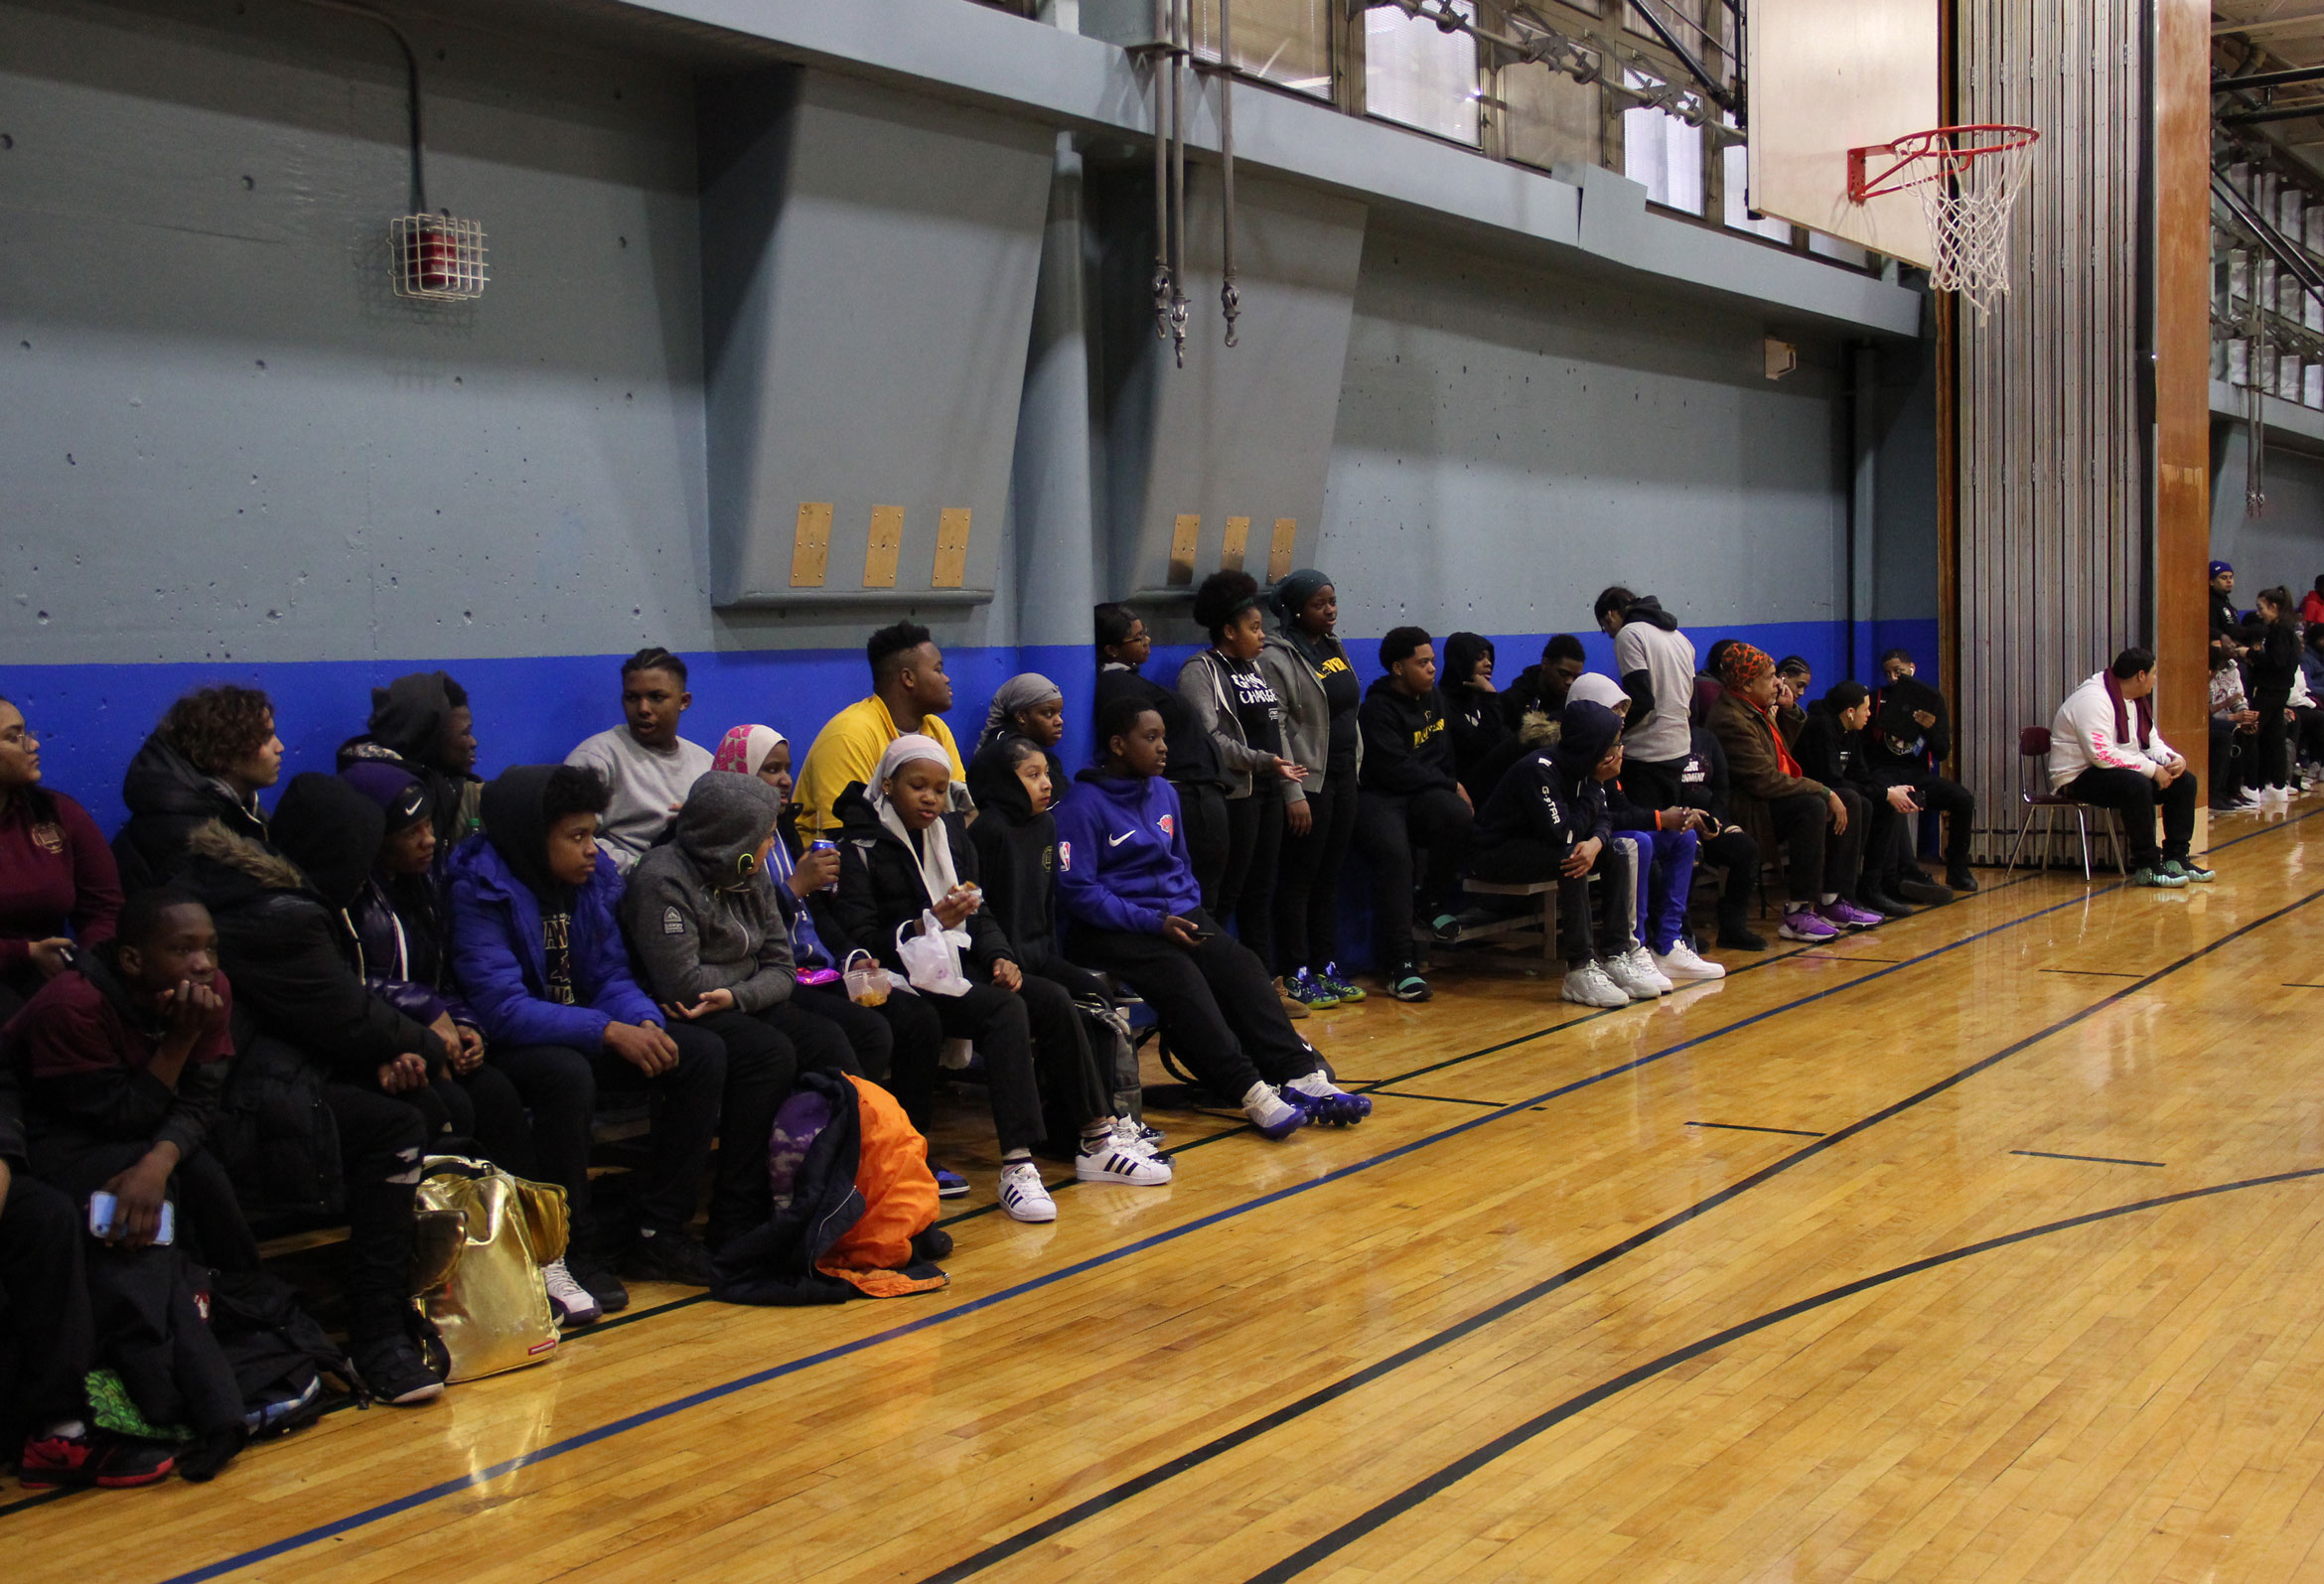 Spectators crowd the sidelines in the Bronx Letters gym. A partition divides the space to allow multiple physical education classes to run simultaneously. Photo by Olivia Schwob